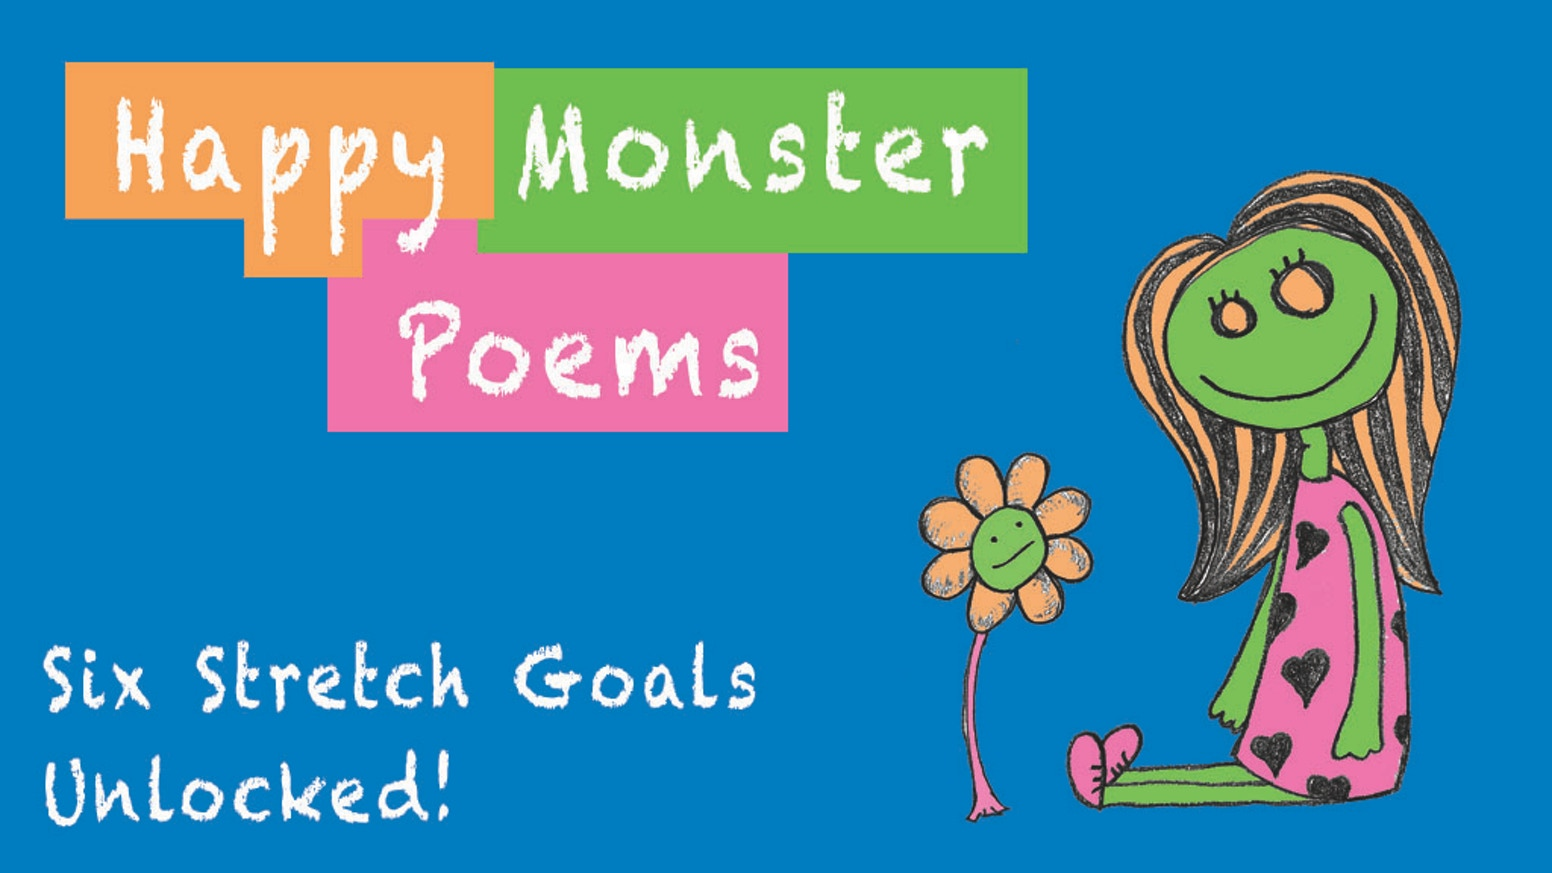 This tiny book of cute, little poems & sketches is just what the monster ordered to put a smile on your face.